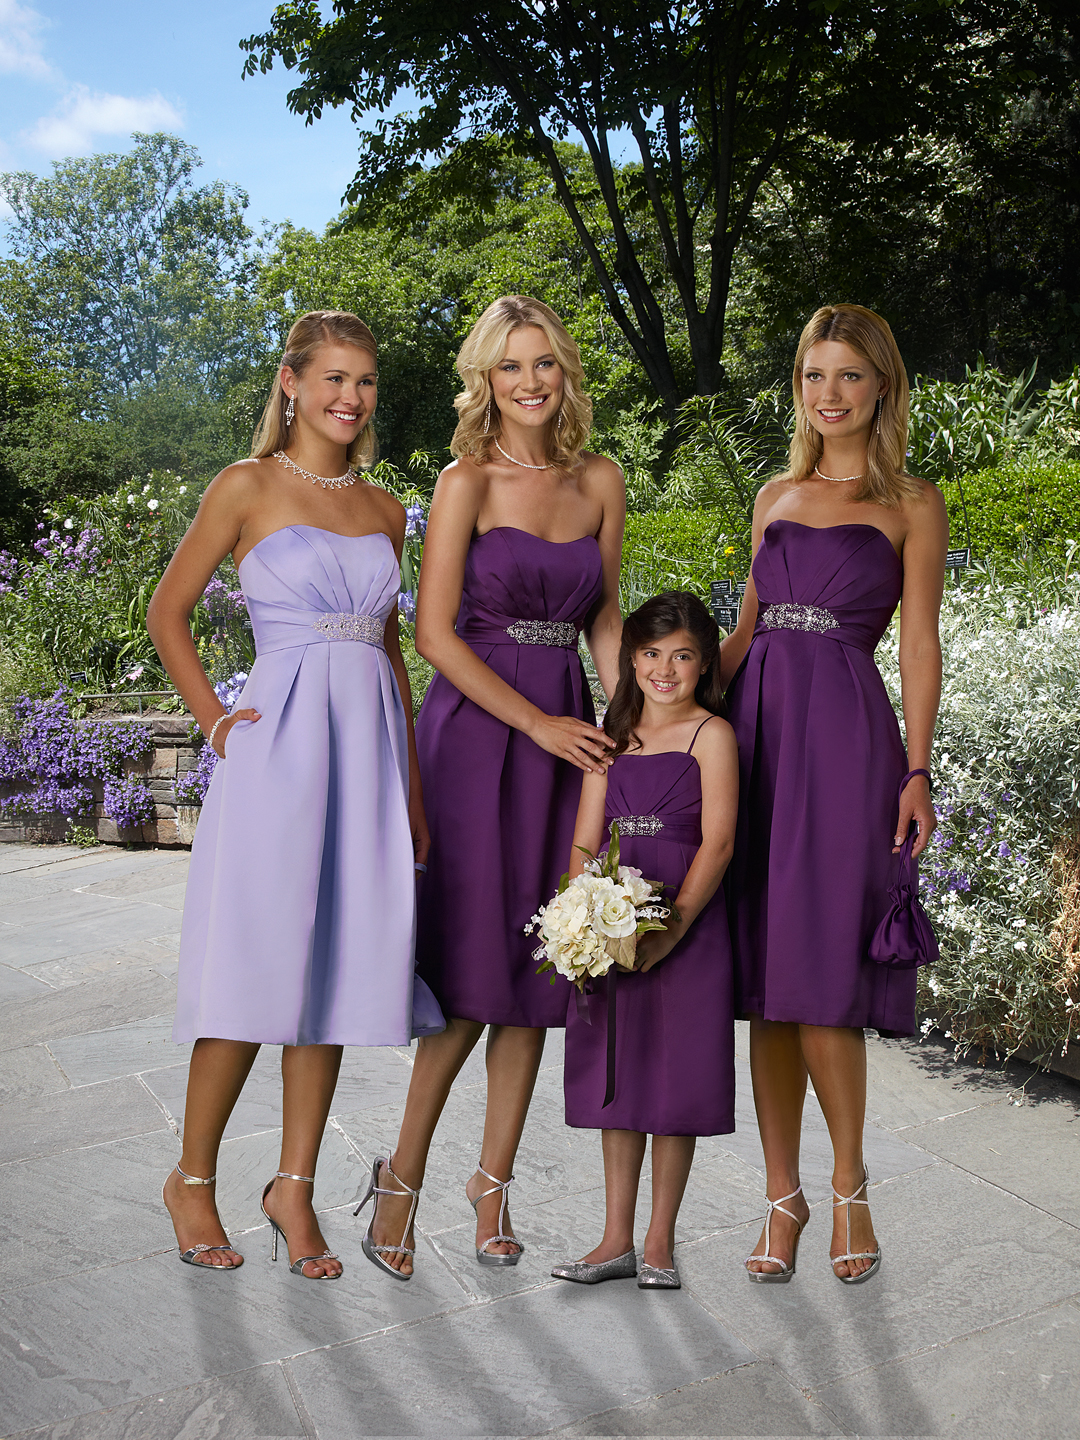 Weddingzilla money saving wedding tips bridesmaid dresses they make inexpensive bridesmaid dresses in tons of colors and sizes that are very close in looks and quality without the price tag ombrellifo Image collections